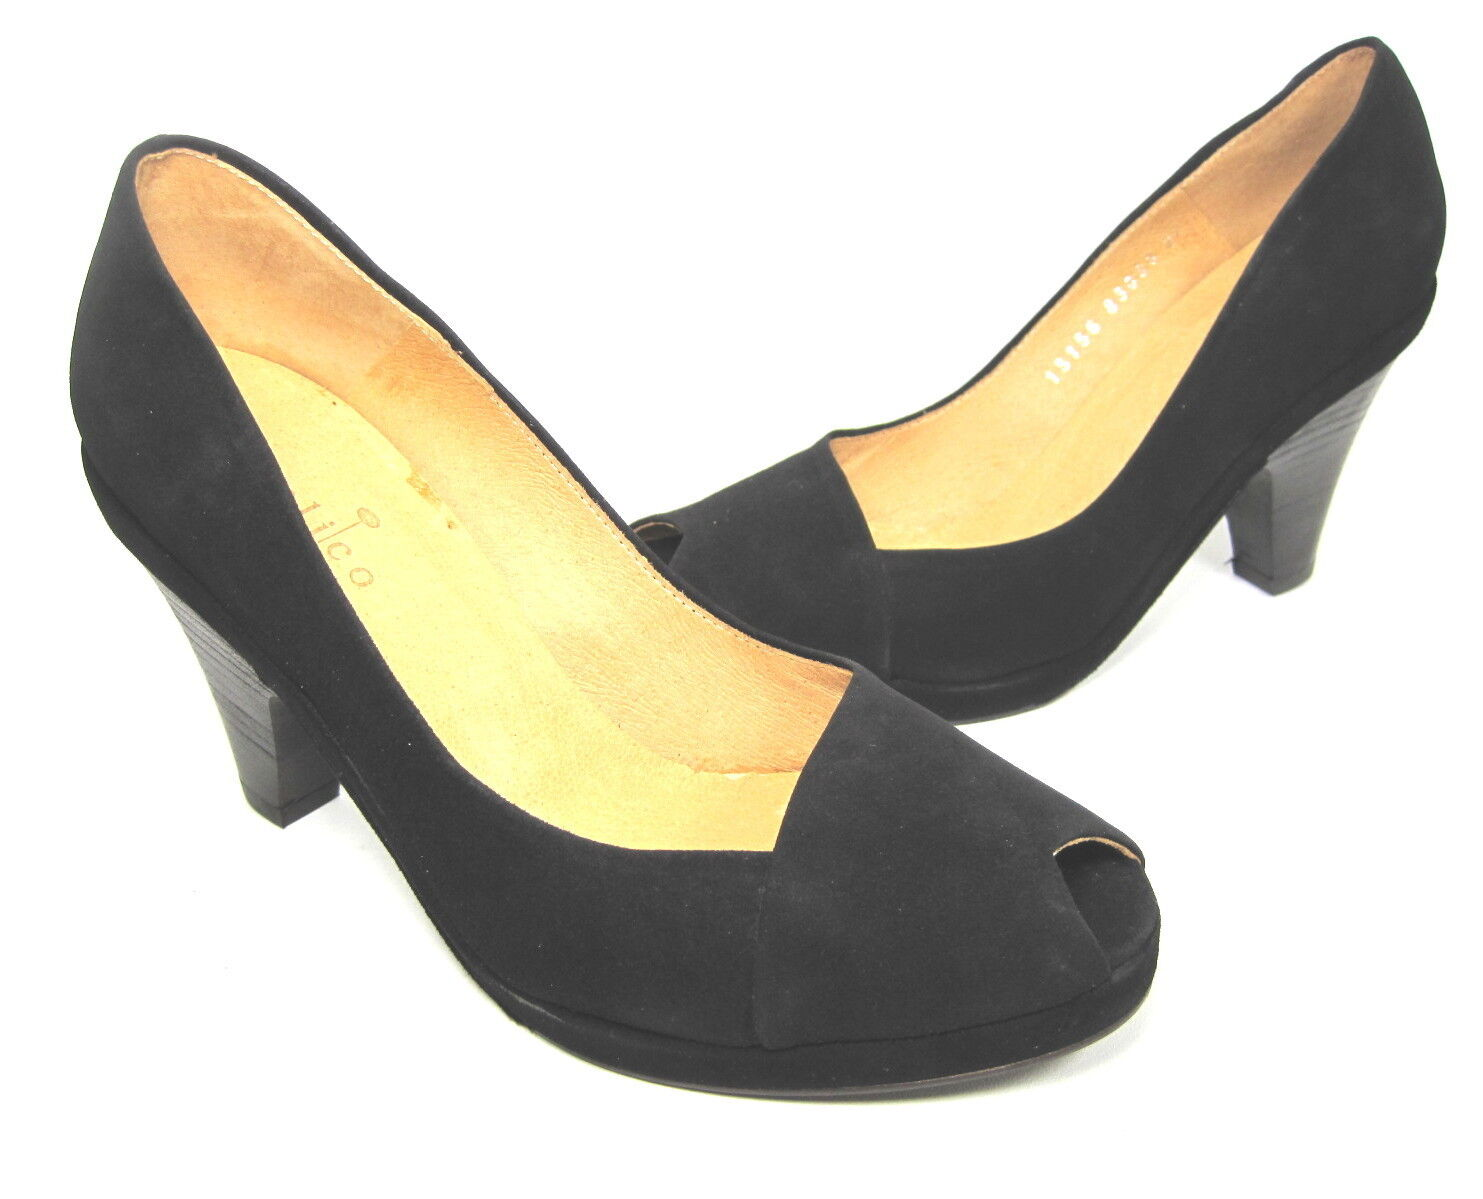 COCLICO WOMEN'S  POLLY POLLY POLLY PEEP TOE  PUMP BLACK LEATHER EUR 36.5 US SIZE 6.5 MEDIUM f6023e